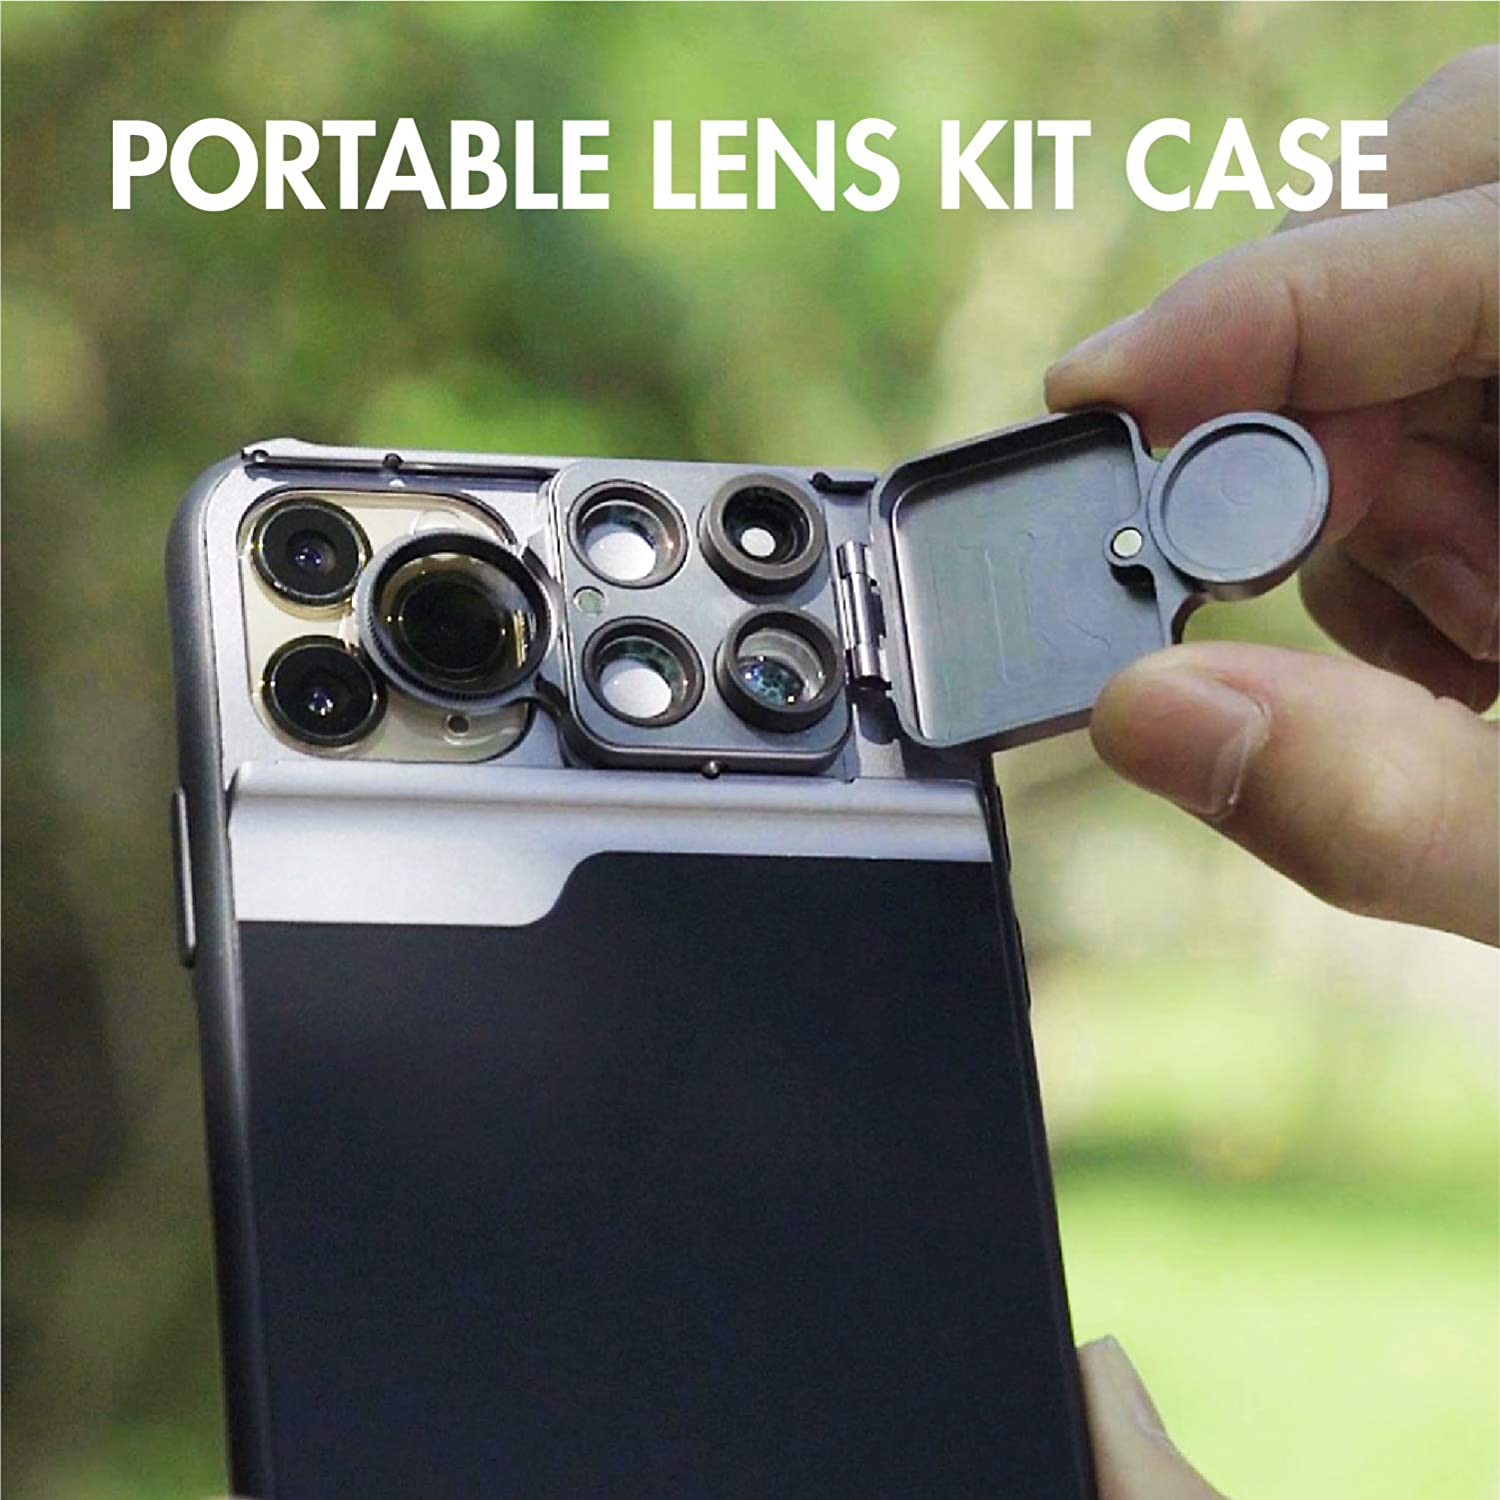 Phone Camera Lens Kit for iPhone 11 Pro 5 in 1 Lens for iPhone 11 Pro Case CPL Filter+10X//20X Macro Lens+180/° Fisheye Lens for iPhone 11 Pro 2X Telephoto Lens Phone Accessories Kits